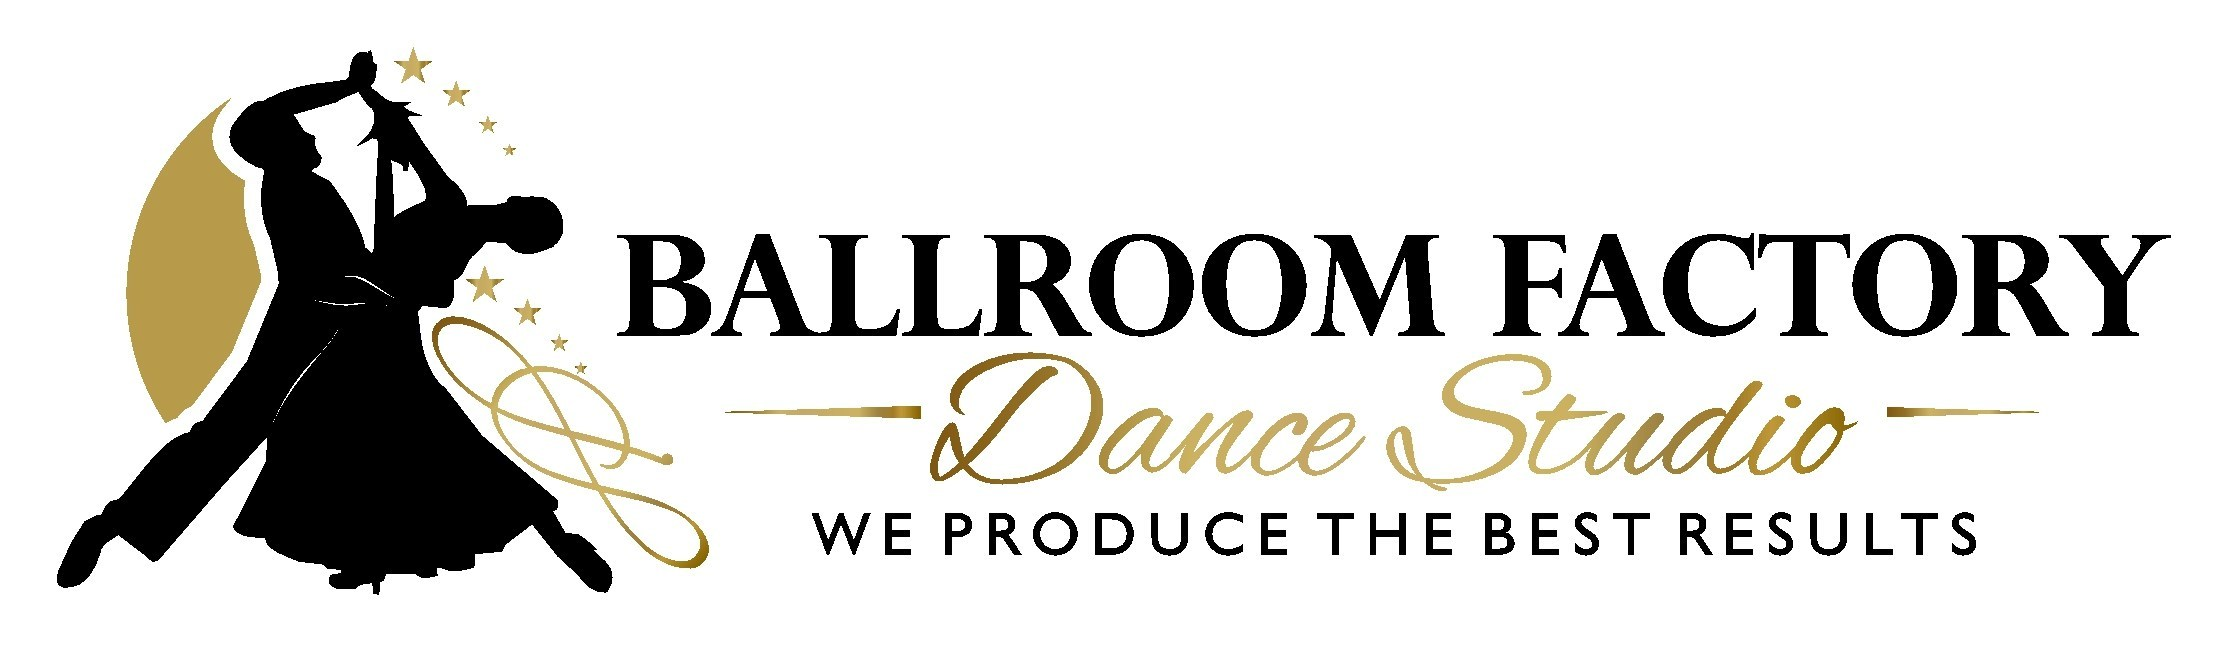 Ballroom Factory Dance Studio, LLC